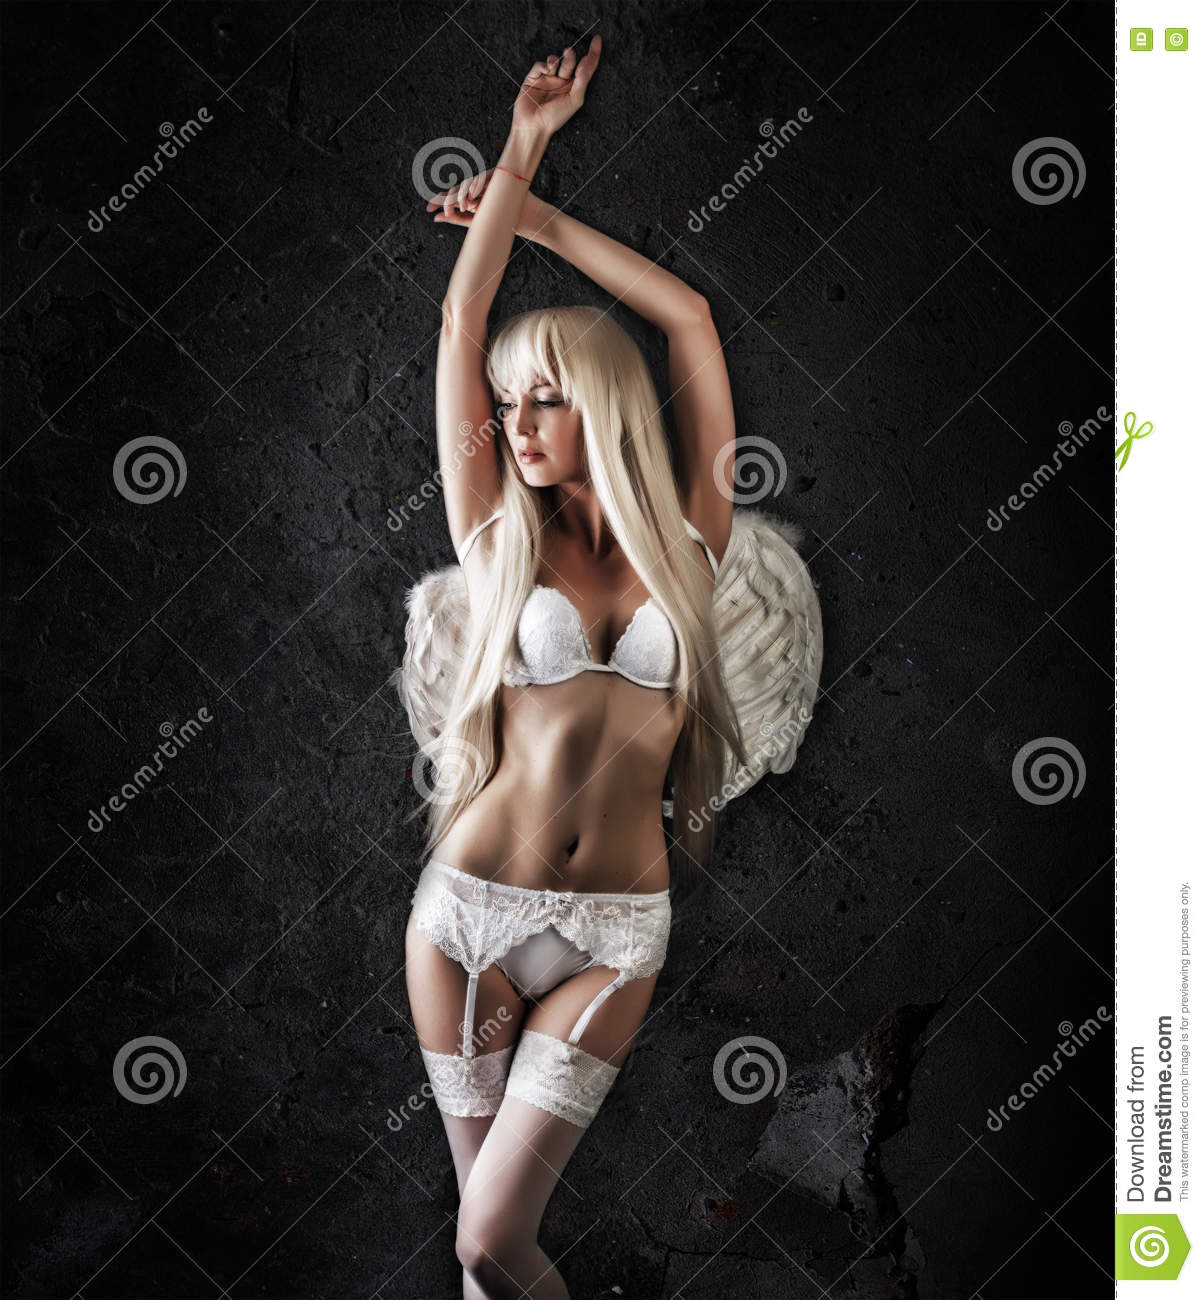 8d6d8520608 Beautiful Woman Model Angel Wearing White Lace Lingerie Stock Photo ...